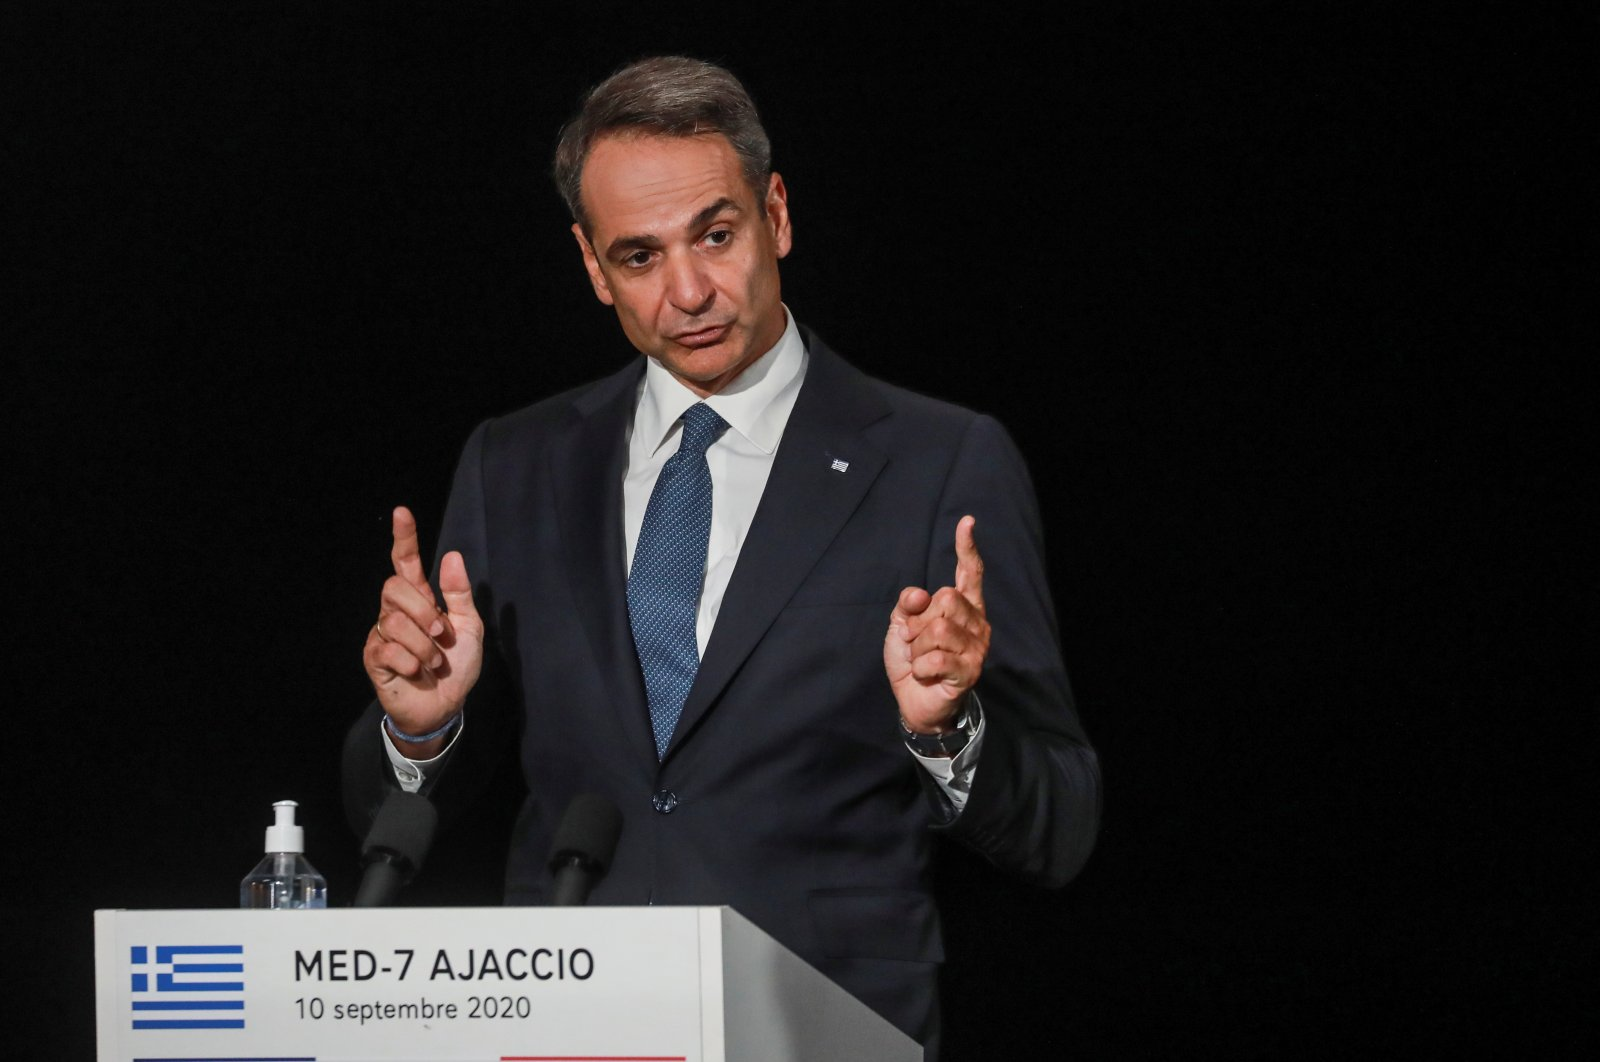 Greek Prime Minister Kyriakos Mitsotakis speaks during the closing news conference of the seventh MED7 Mediterranean countries summit, in Porticcio, on the Mediterranean Island of Corsica, France September 10, 2020. (Reuters Photo)